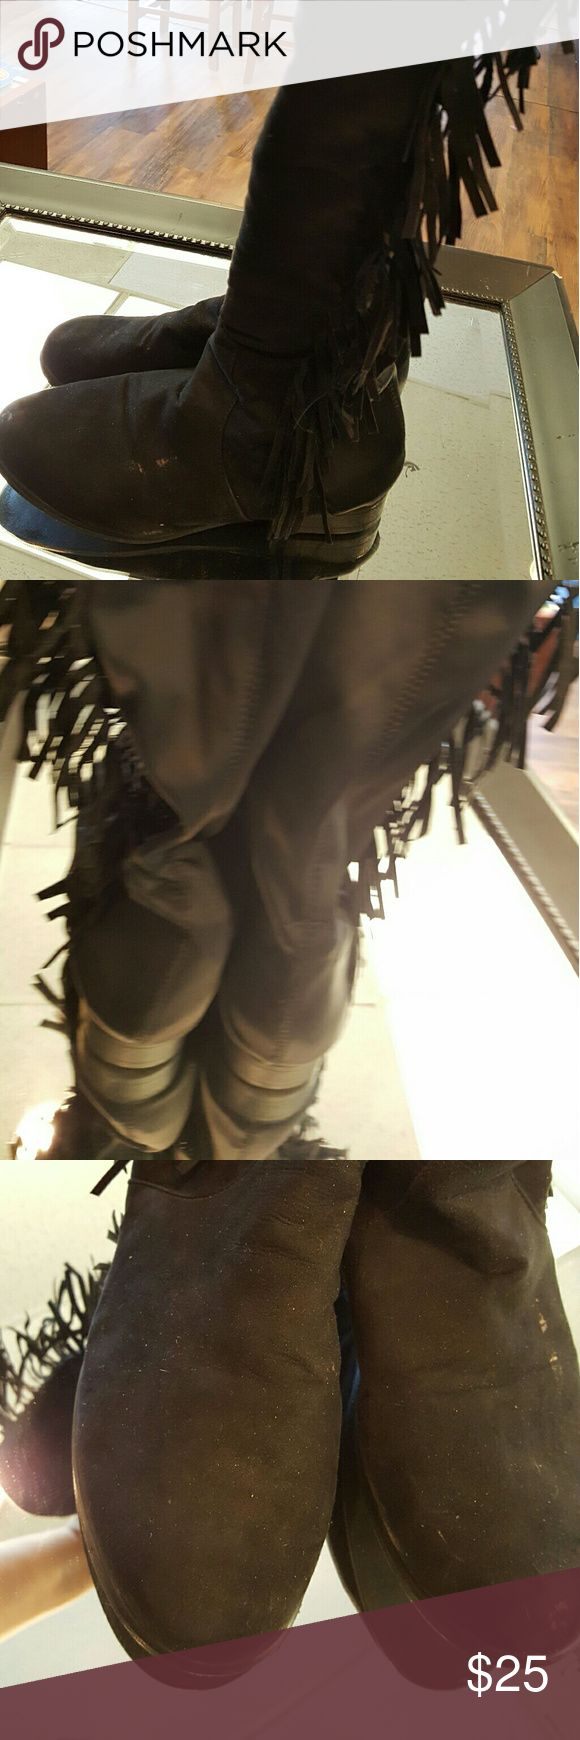 Woman's knee high boots with fringe  sz 9/10 Woman's knee high boots with fringe sz 9/10 Shoes Over the Knee Boots